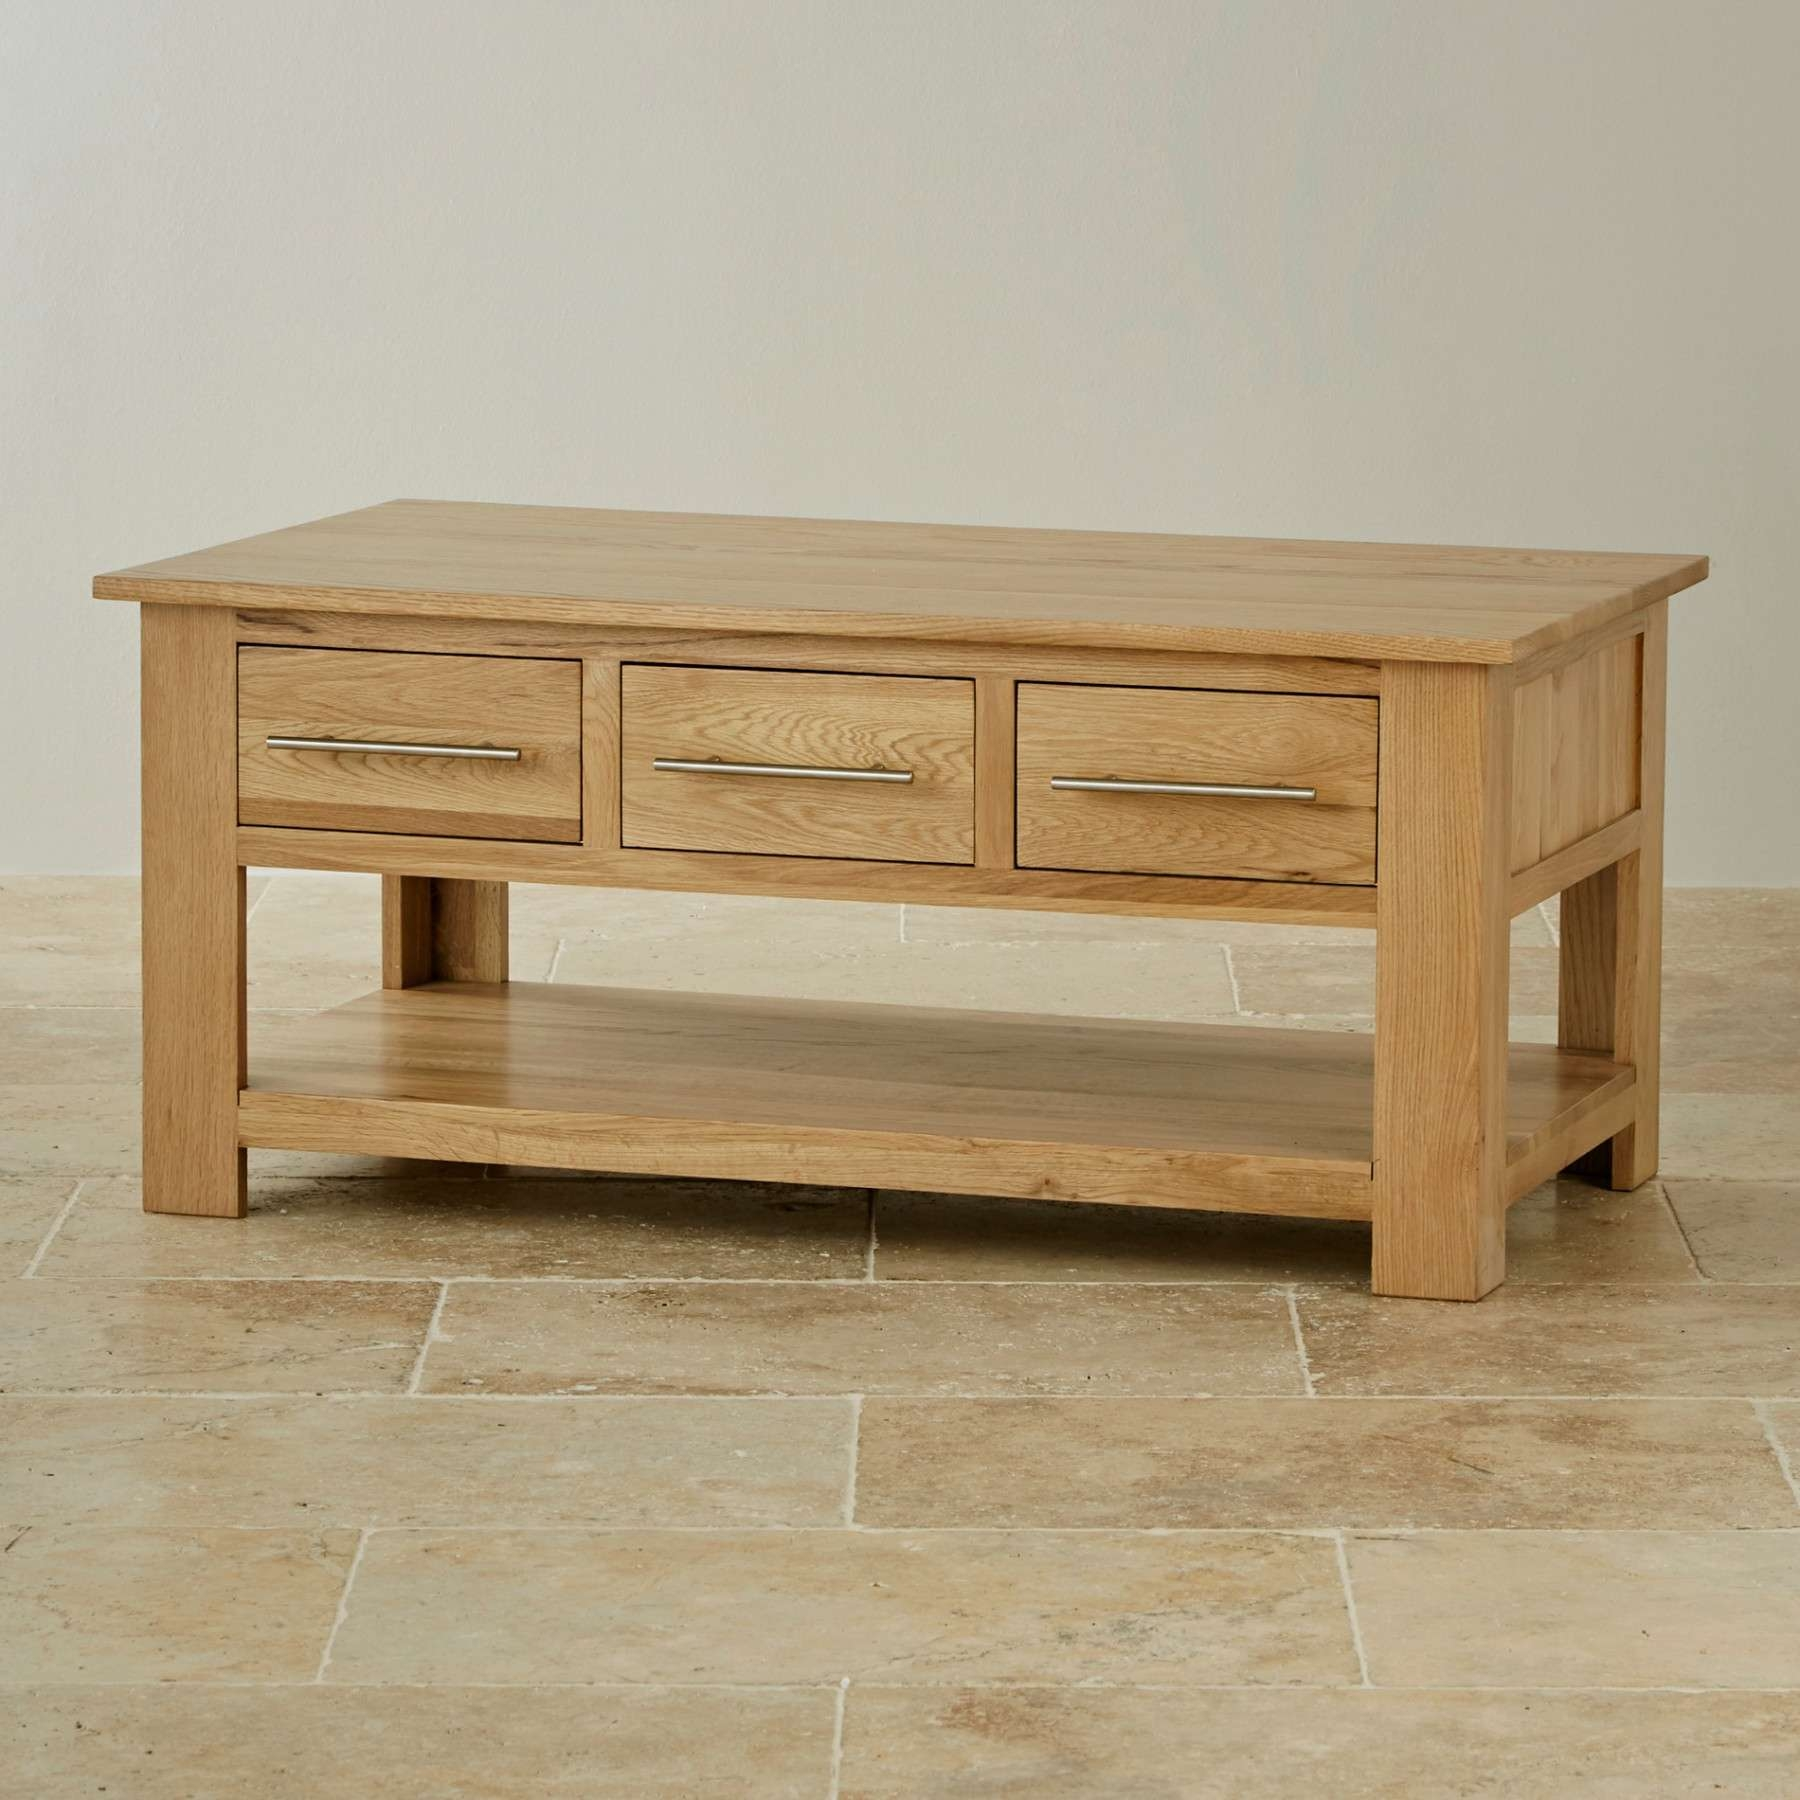 Oak Furniture Land With Best And Newest Solid Oak Coffee Tables (View 11 of 20)